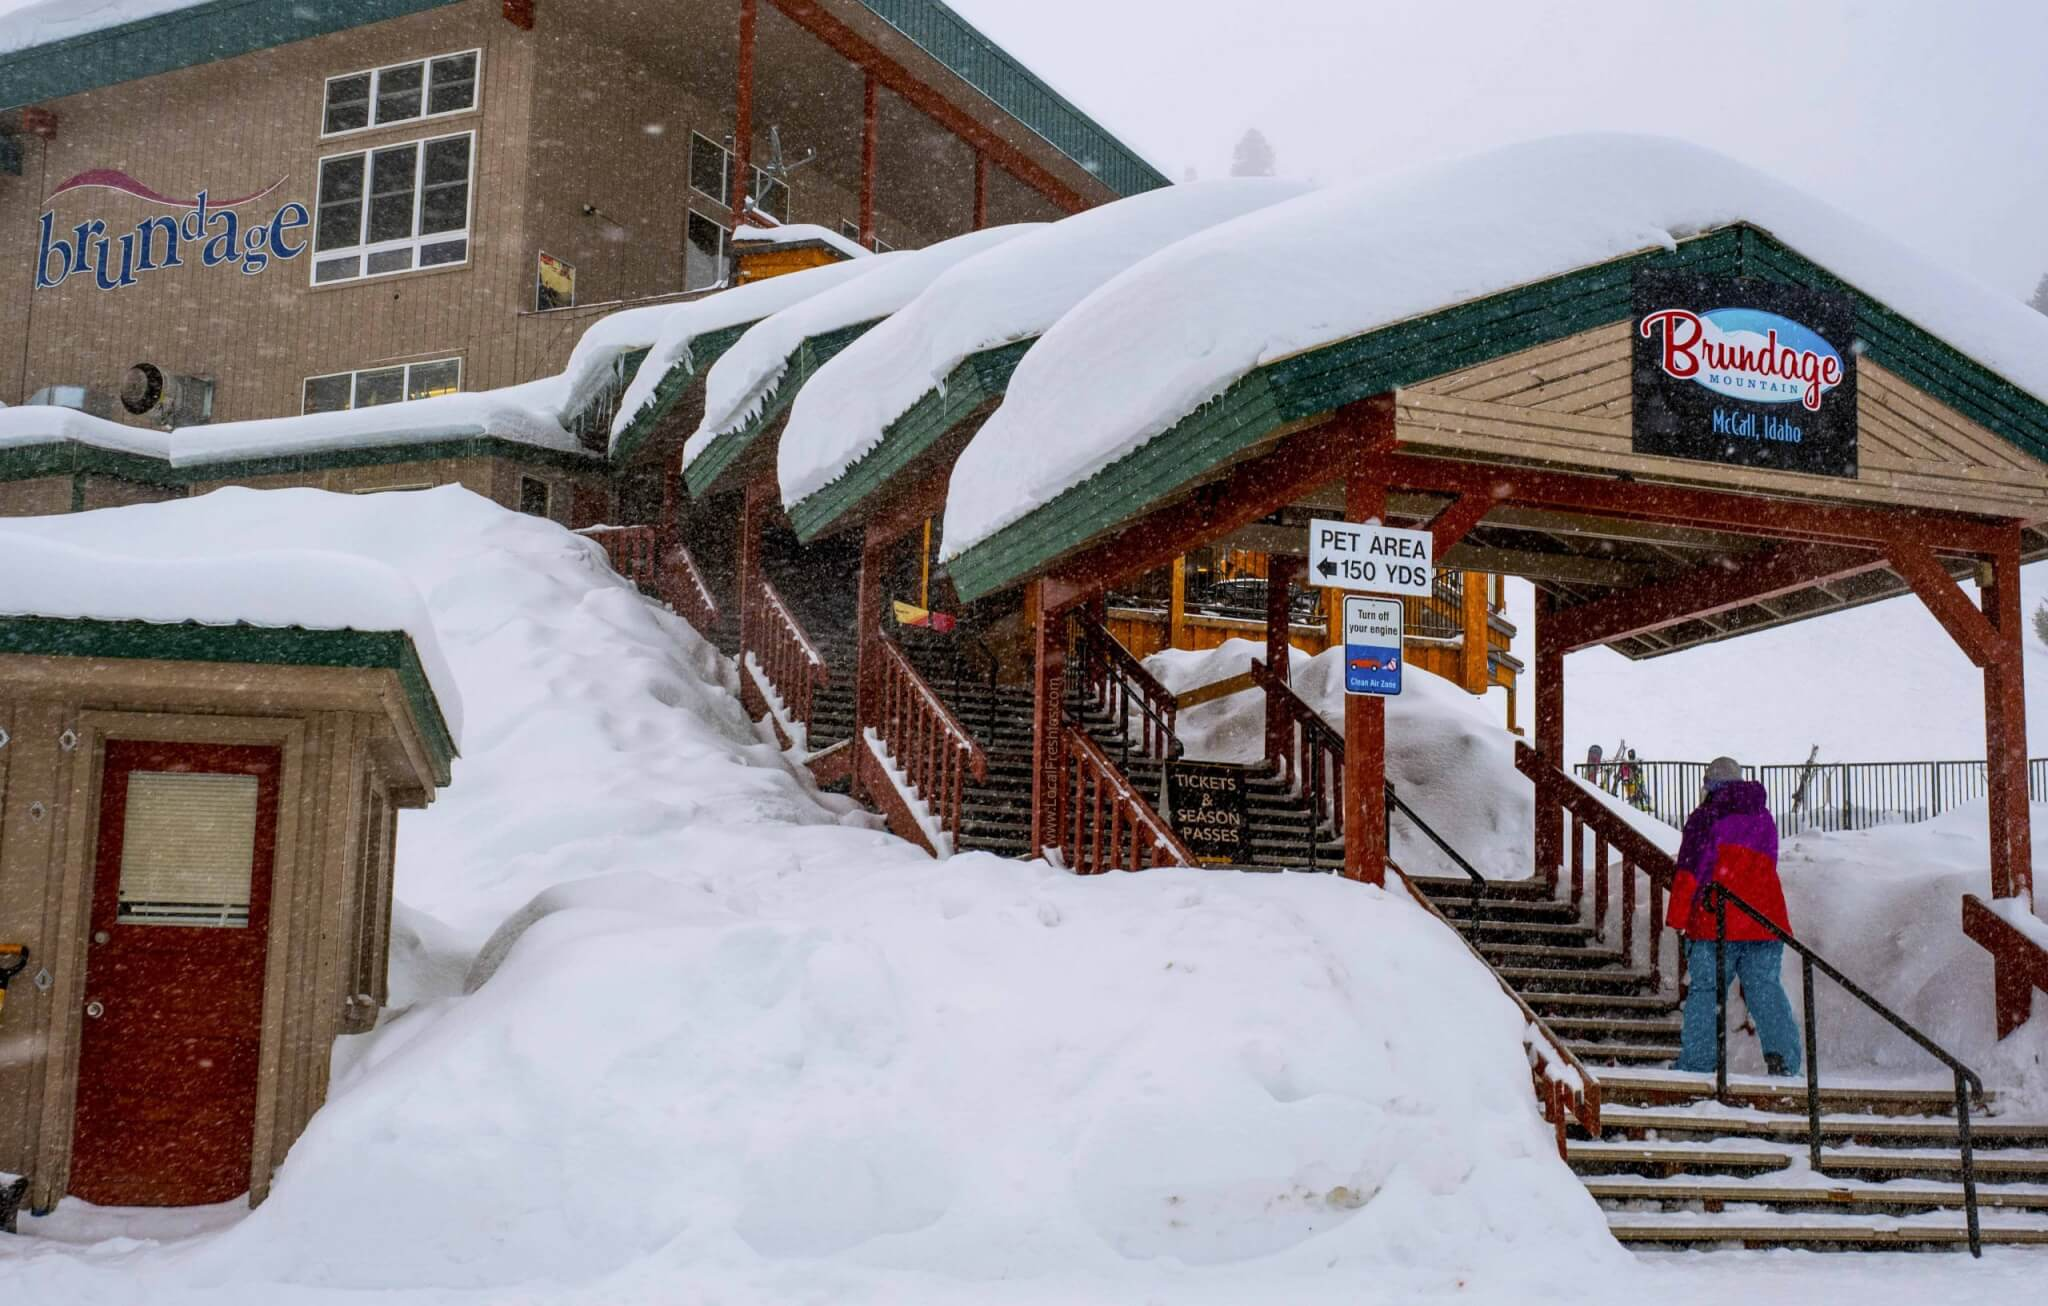 The front of the Brundage Mountain Resort lodge one of the McCall Idaho Ski Resort (s)